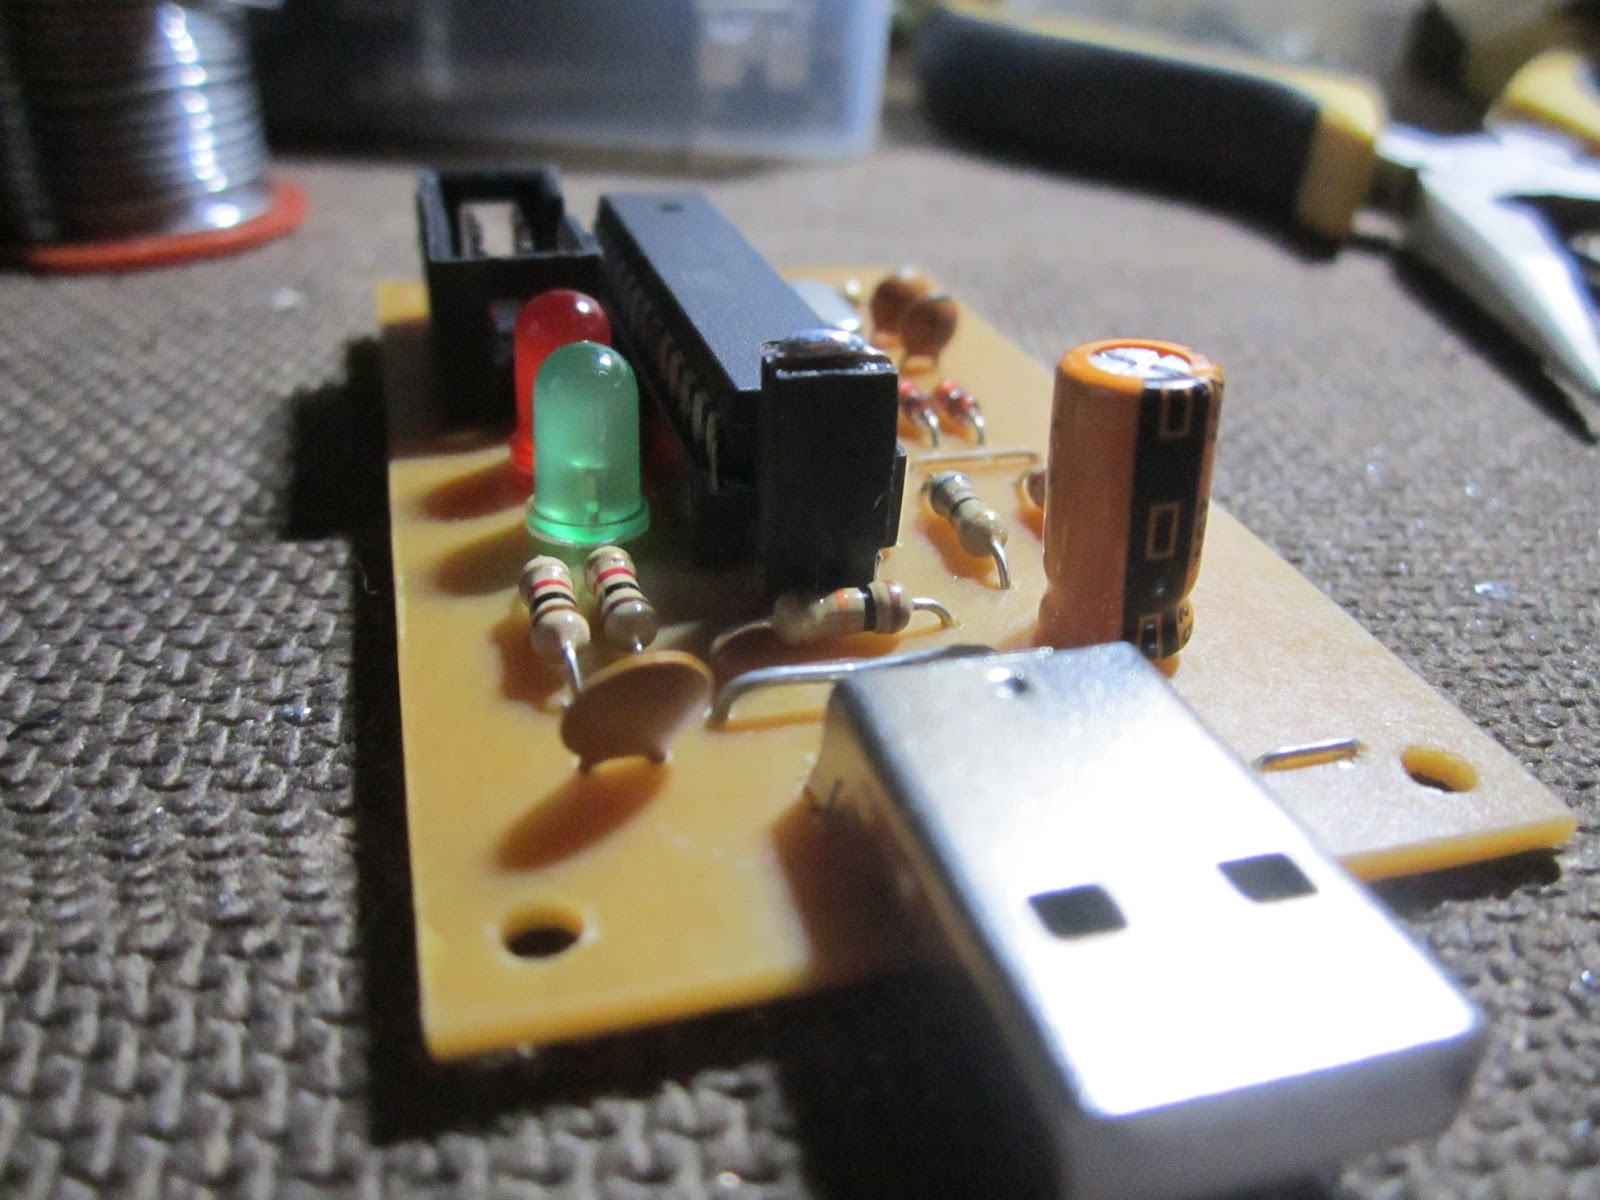 Horizon Of Electronics Usbsap Usb Programmer For Atmel Avr Microcontrollers So Hear First I Would Like To Introduce How Build Your Own Usbasp